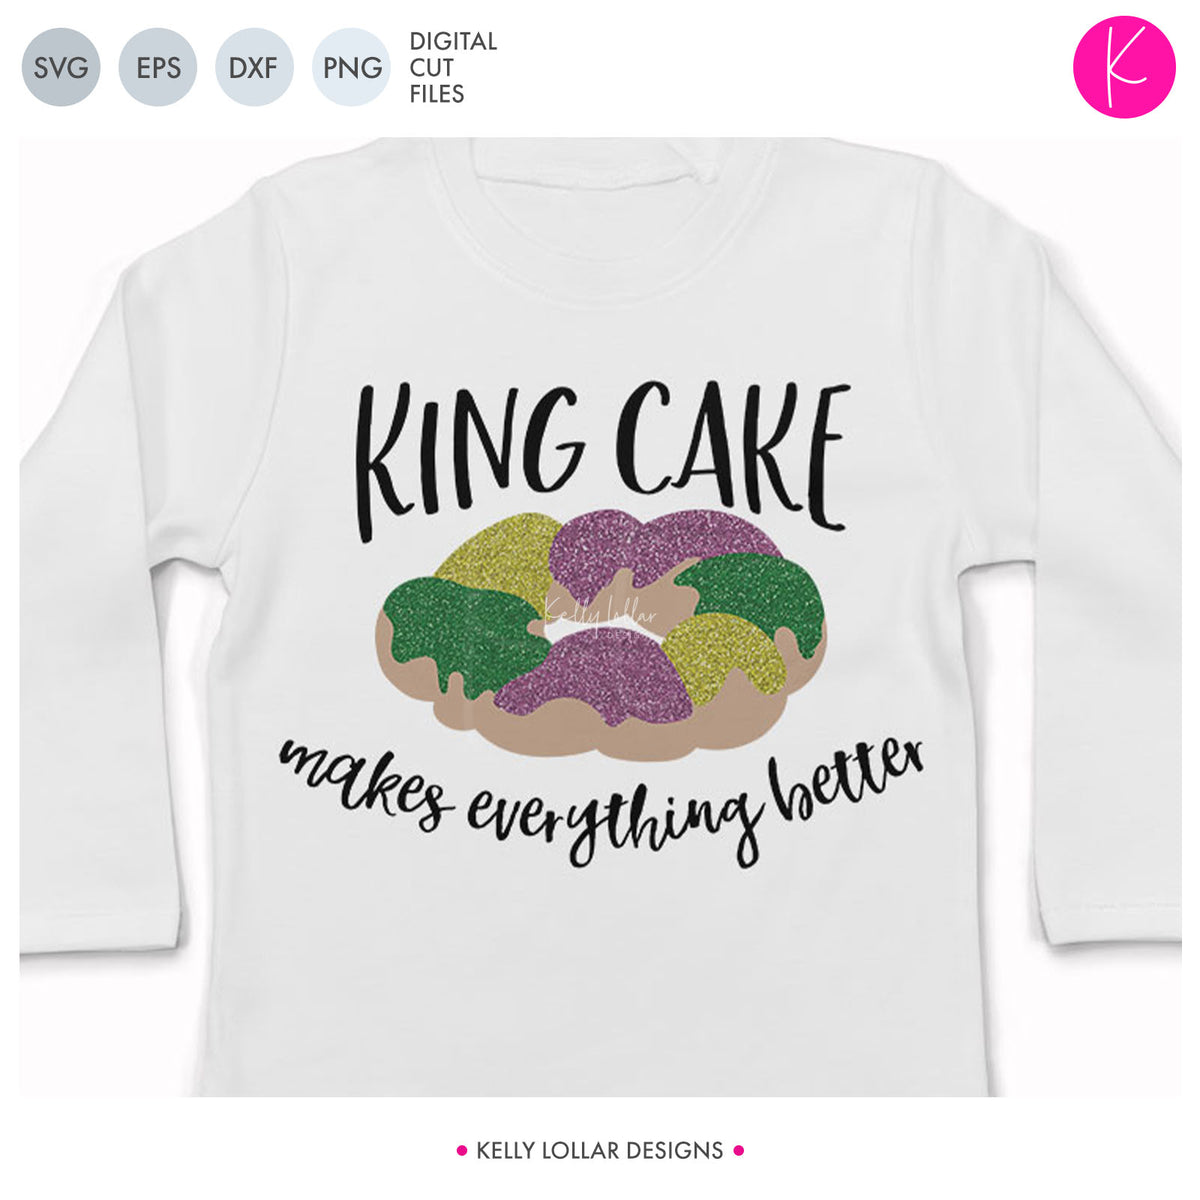 King Cake Makes Everything Better | SVG DXF EPS PNG Cut Files